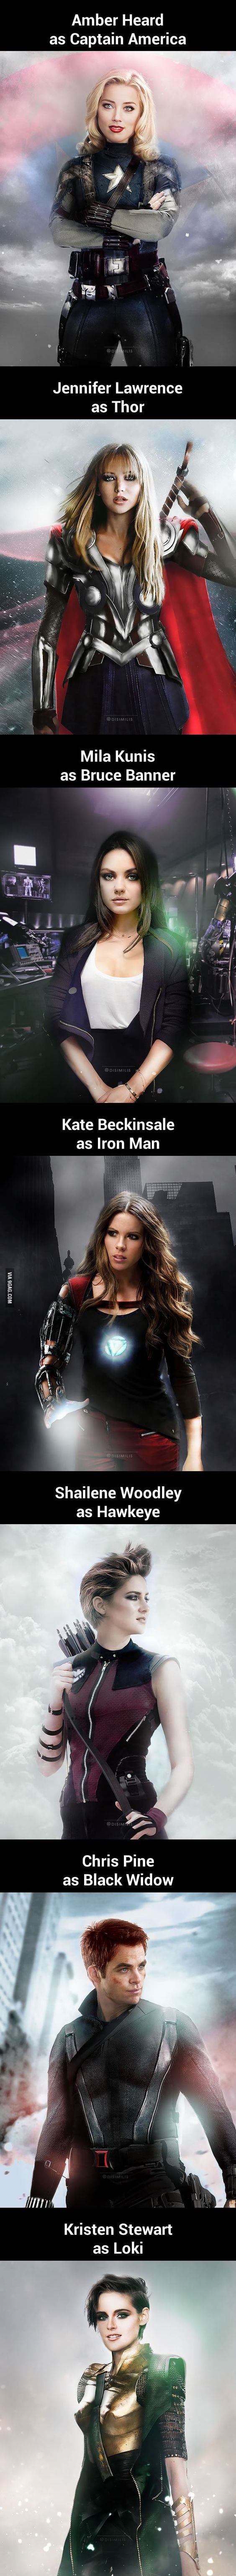 """Someone Swapped The Genders Of """"The Avengers"""" And It's Perfect http://www.ezcosplay.com/movie-tv-costumes/movie-costume-hot-sales.html"""